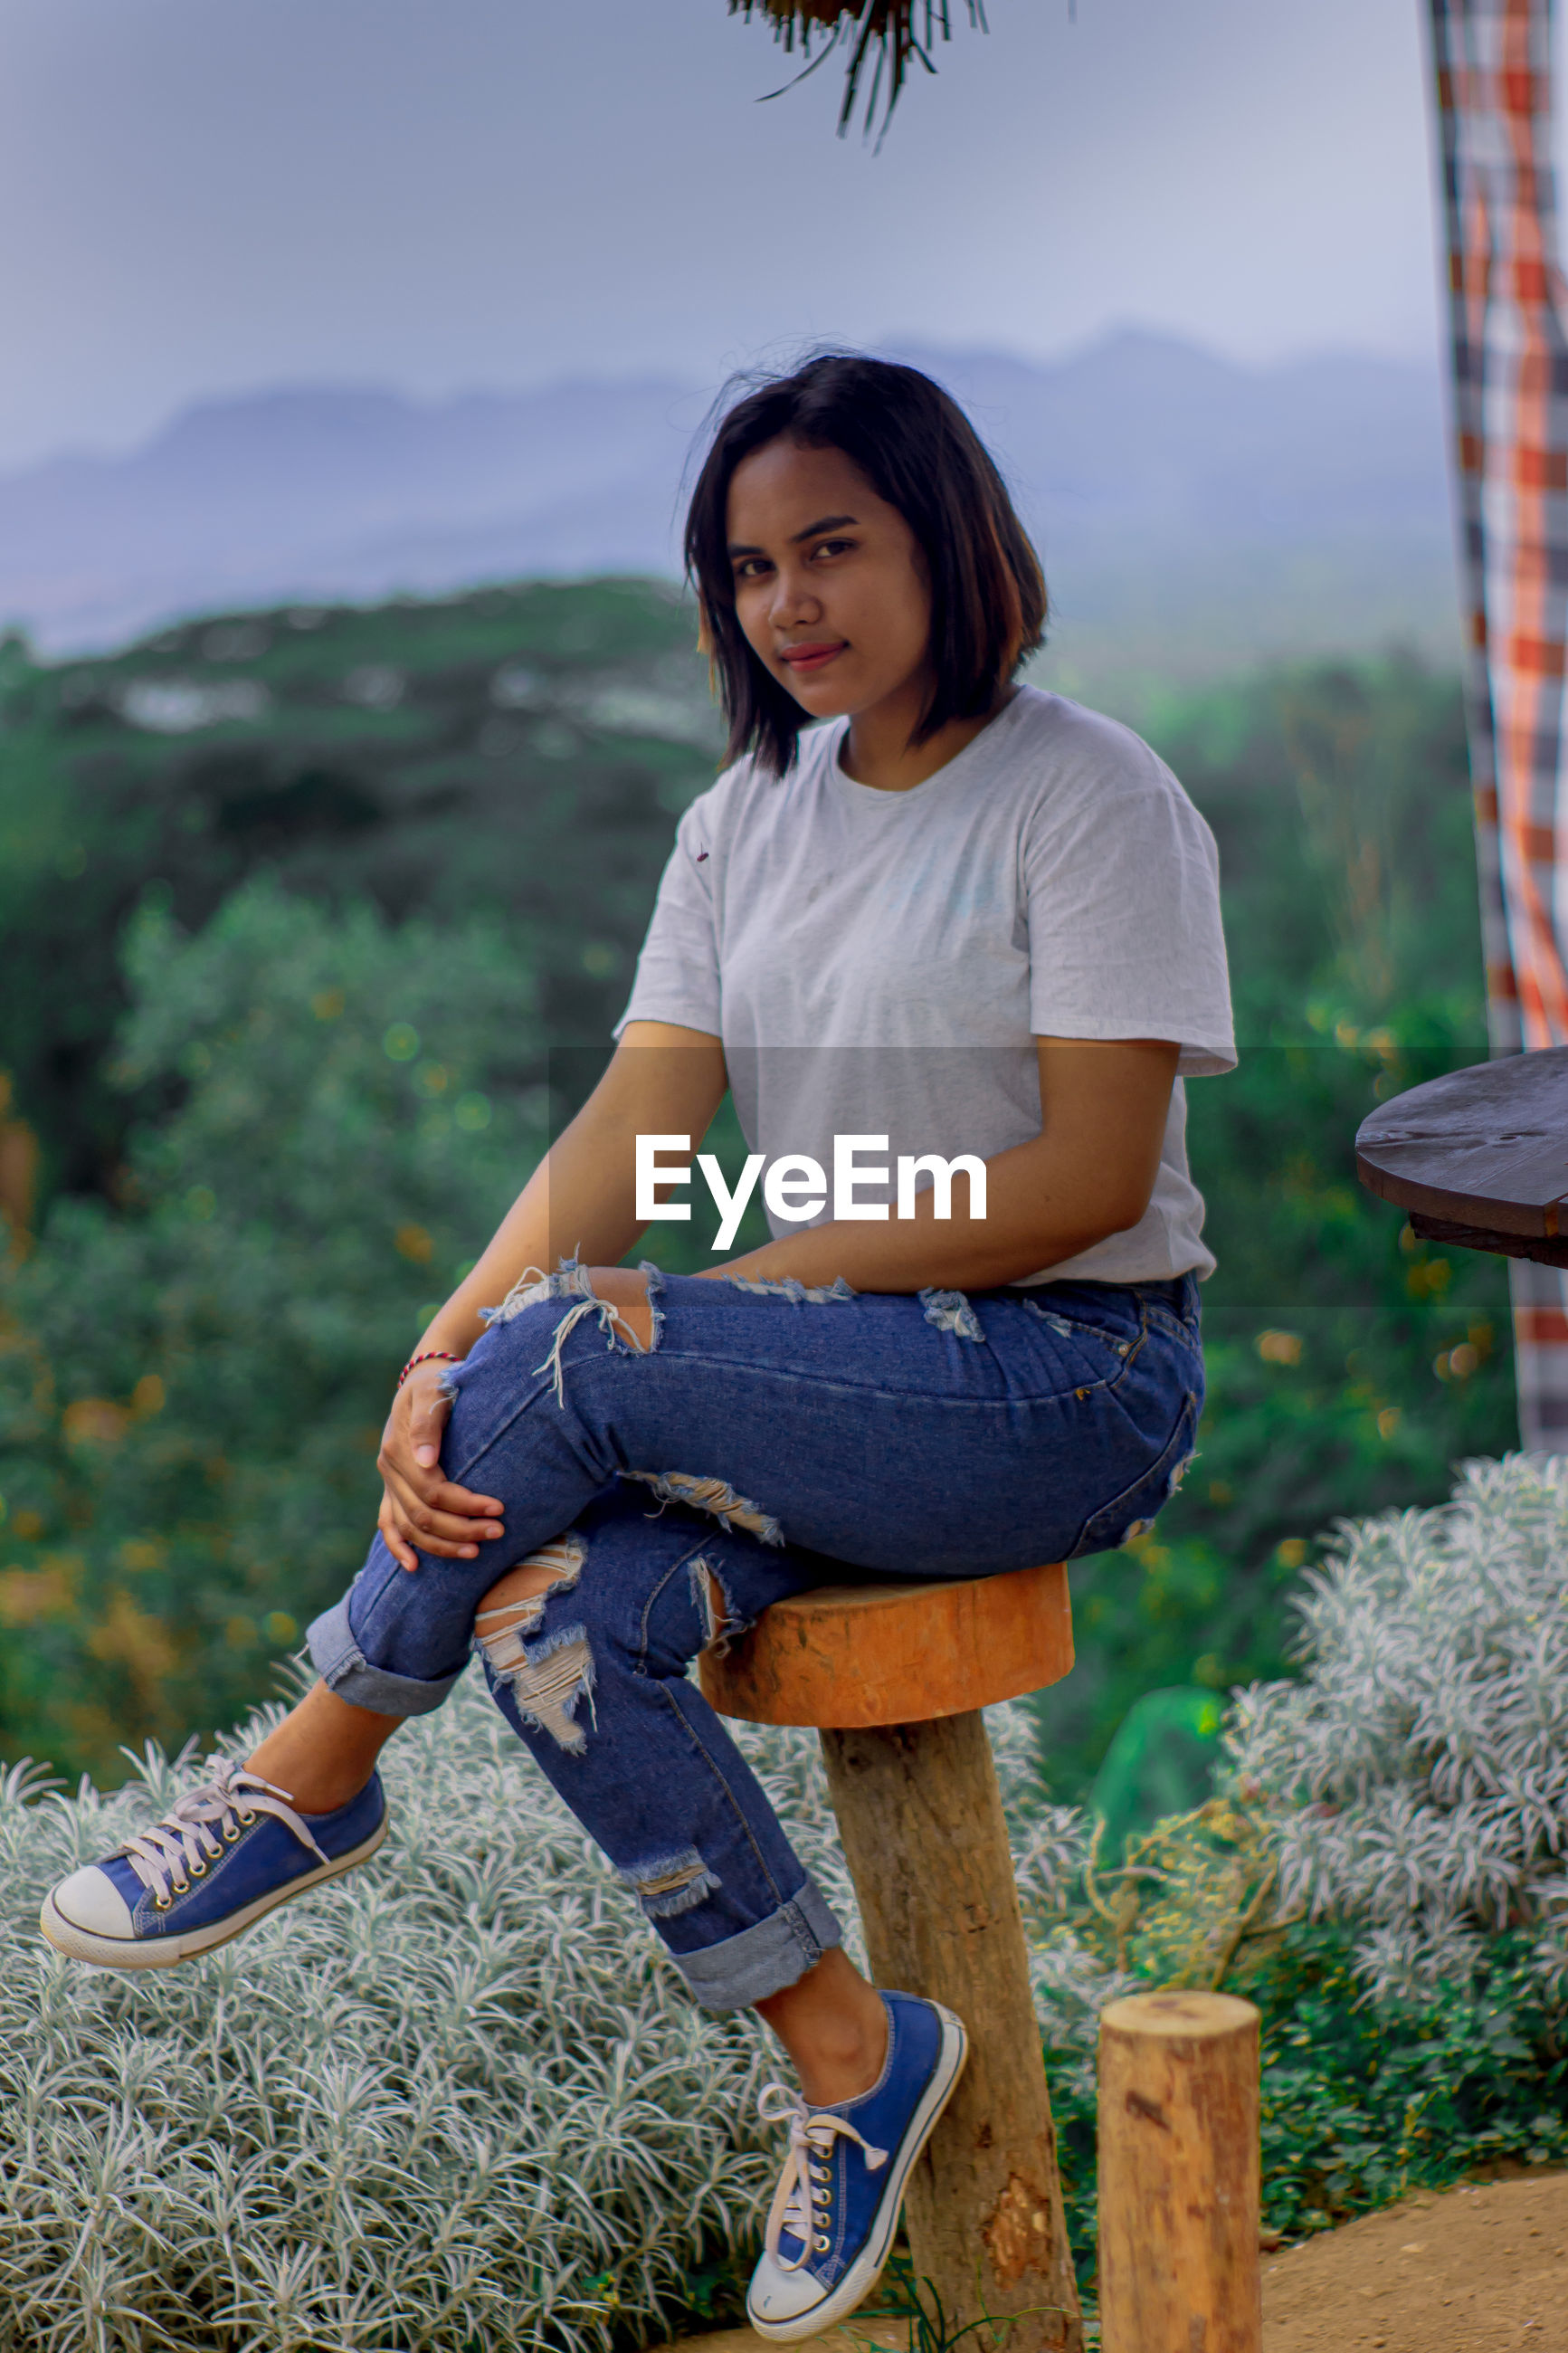 smile woman in garden Woman Portrait Woman Who Inspire You Women Of EyeEm Women Full Length Sitting Portrait Smiling Black Hair Jeans Beautiful Woman Casual Clothing Prepared Food Grassland Growing Gardening Glove